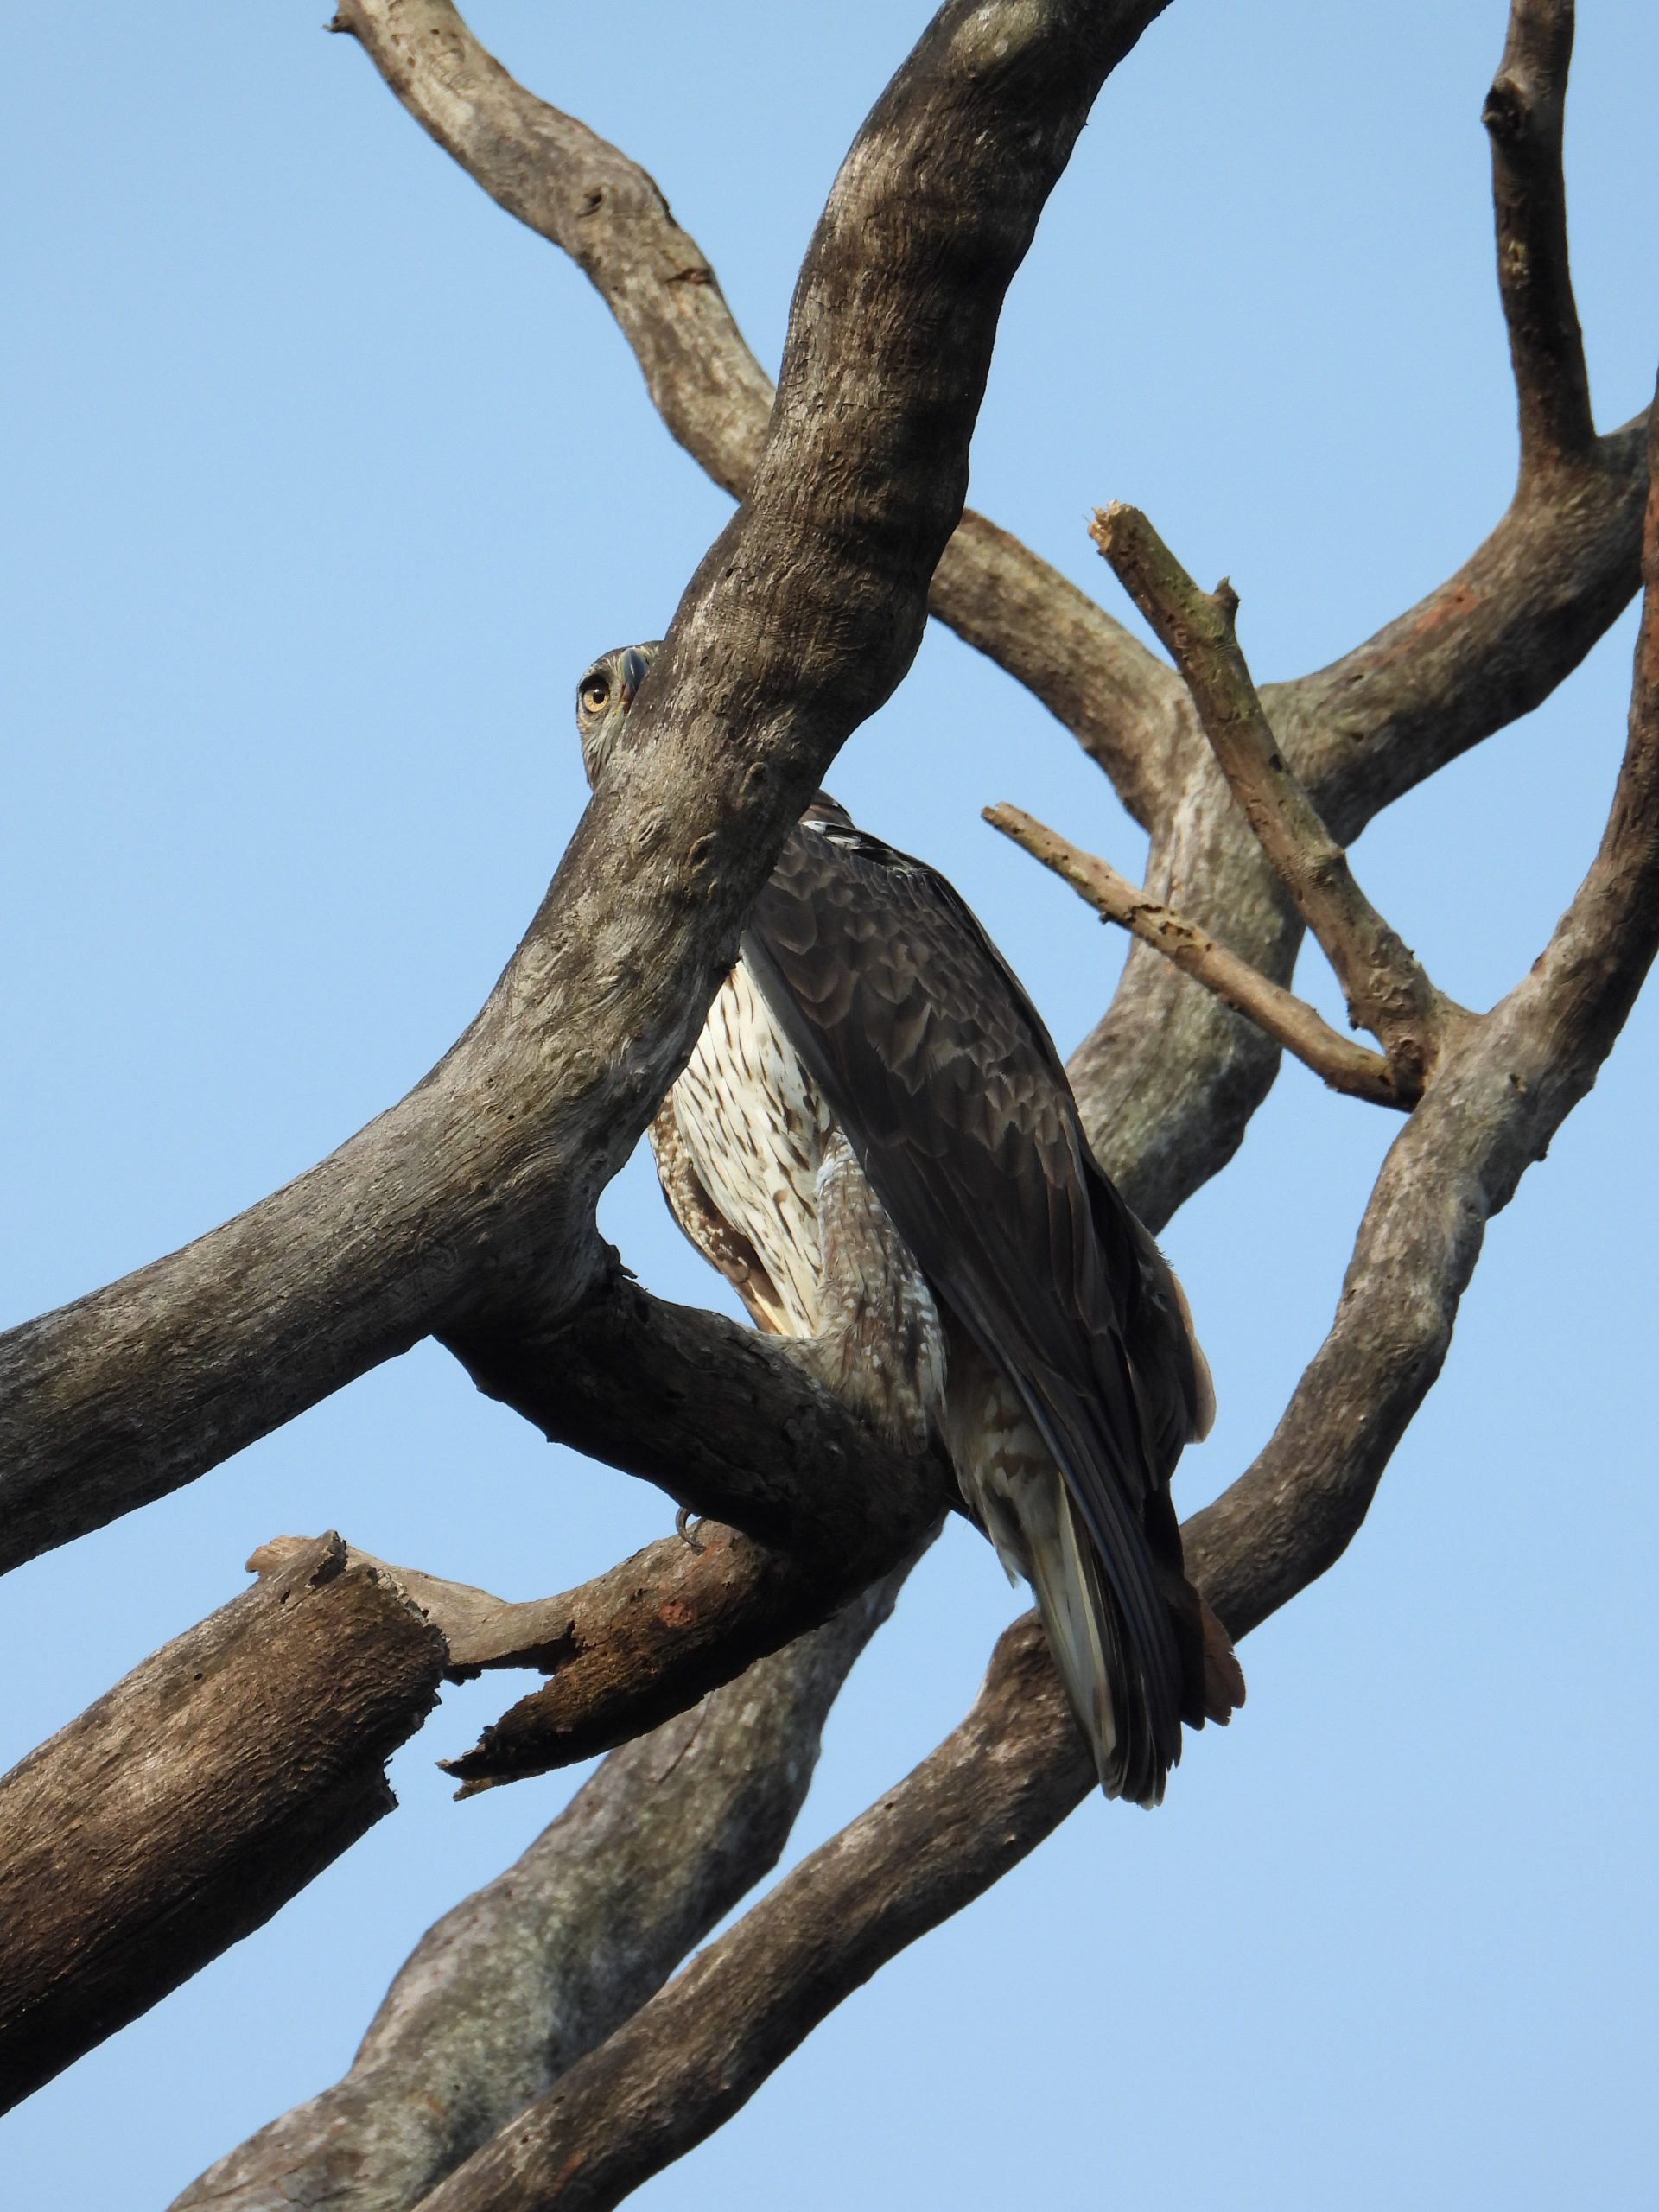 An eagle on a dry tree